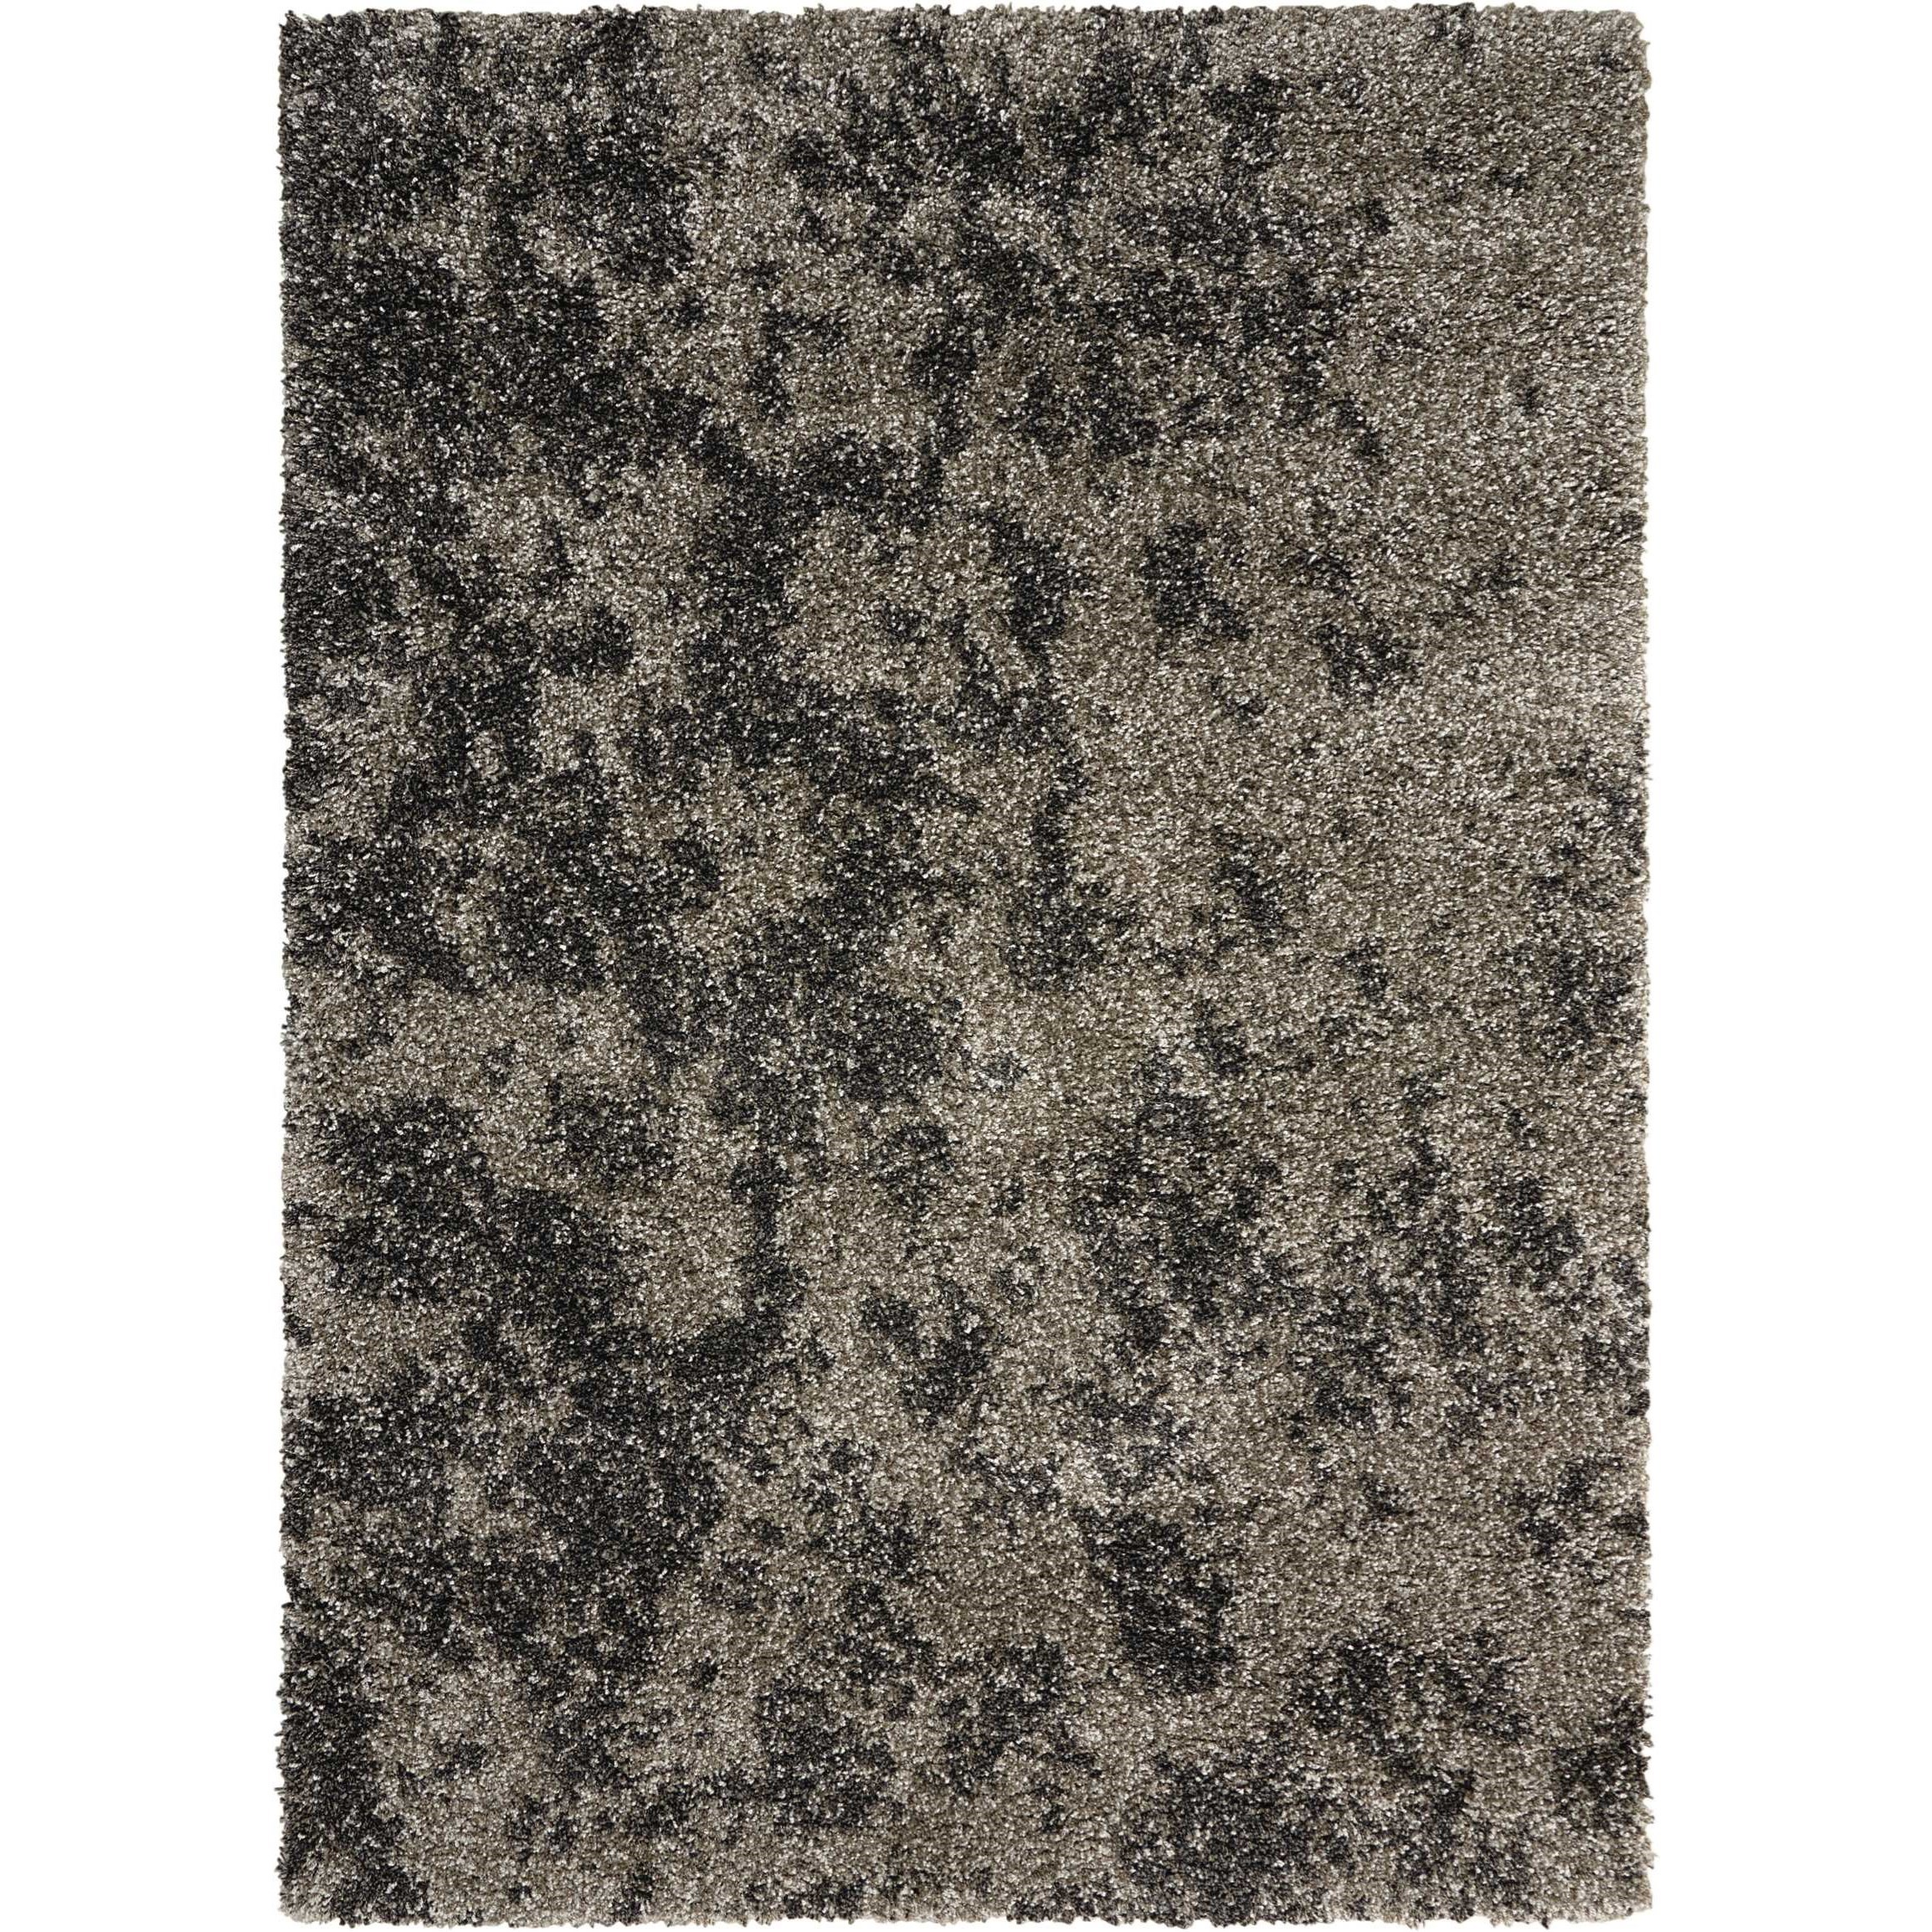 Amore Amore AMOR4 Grey 4'x6' Area Rug by Nourison at Home Collections Furniture